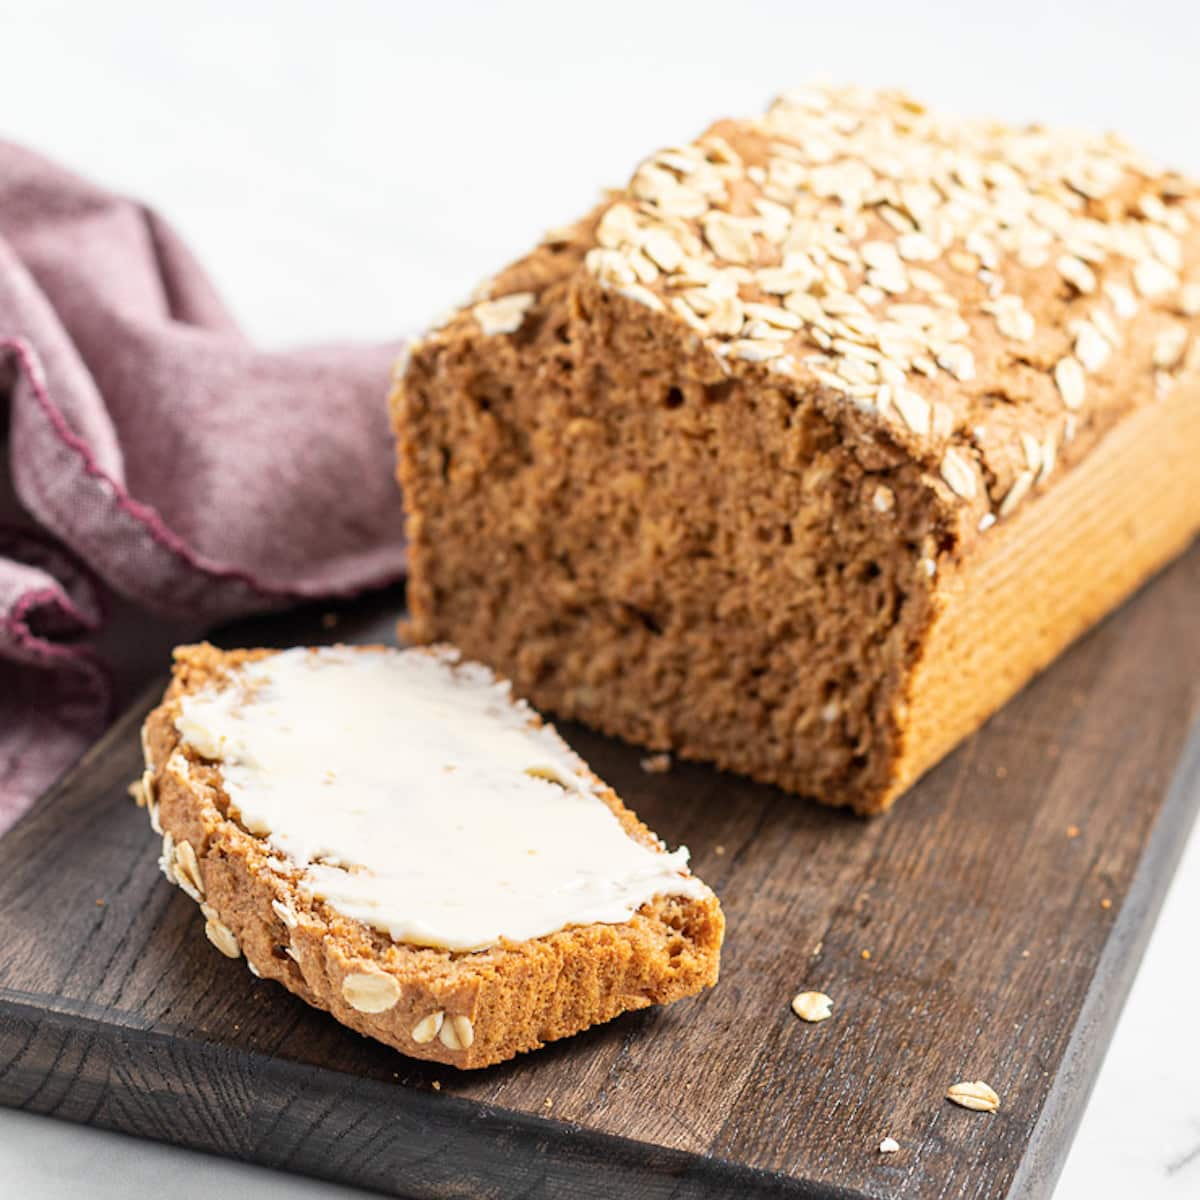 a slice of buttered spelt bread